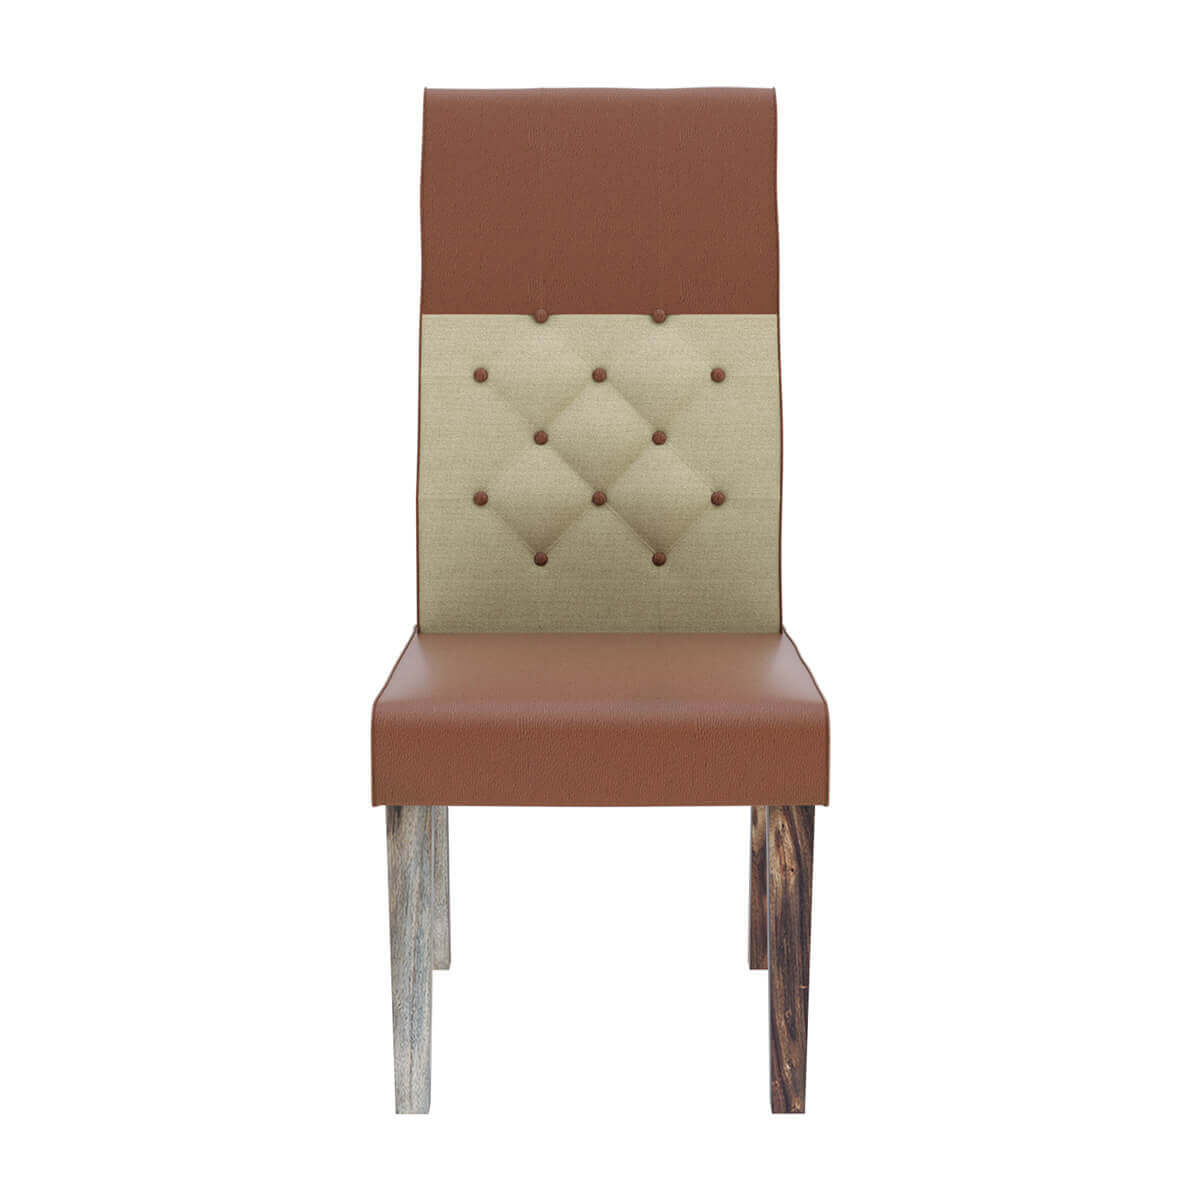 leather tufted dining chair small travel beach chairs hosford handcrafted and fabric parson